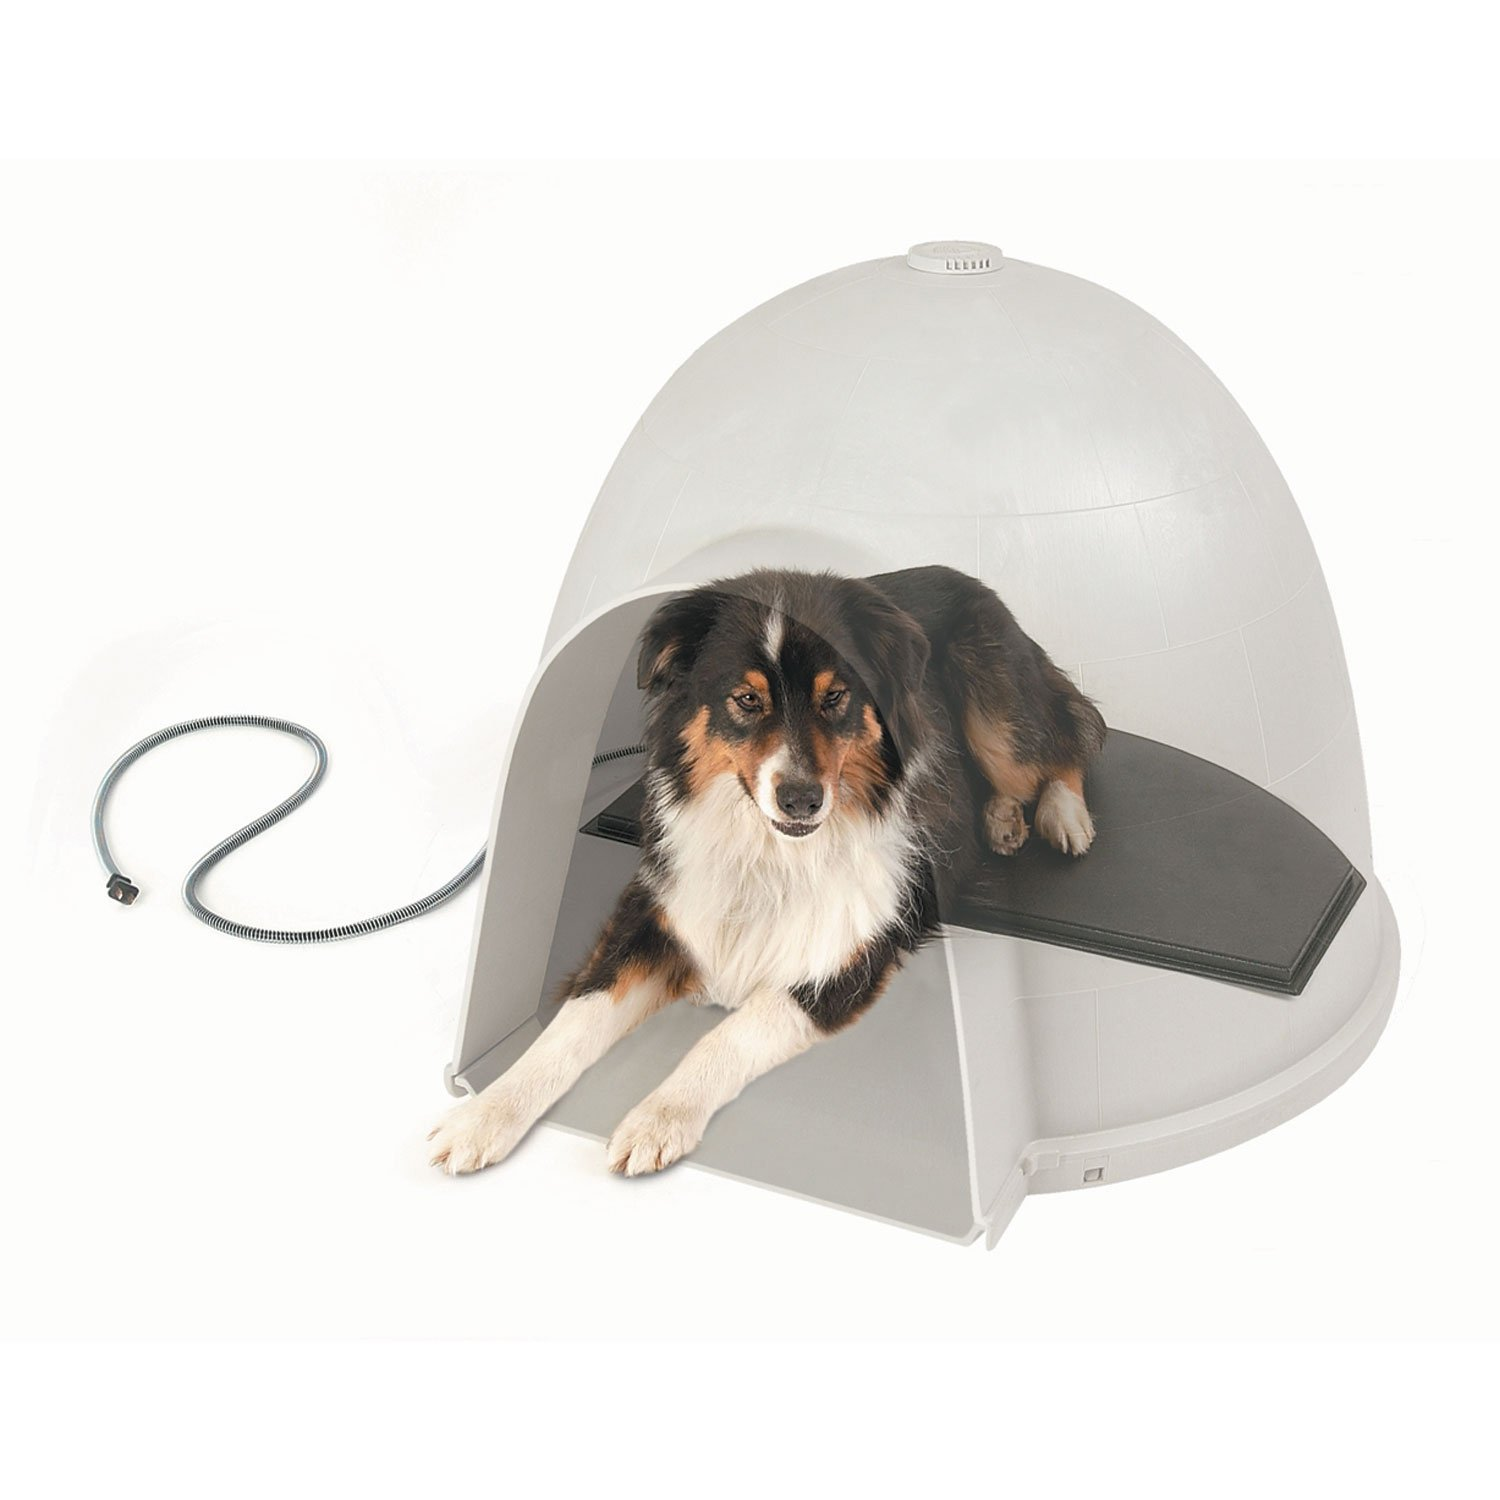 Igloo Dog House Warmth